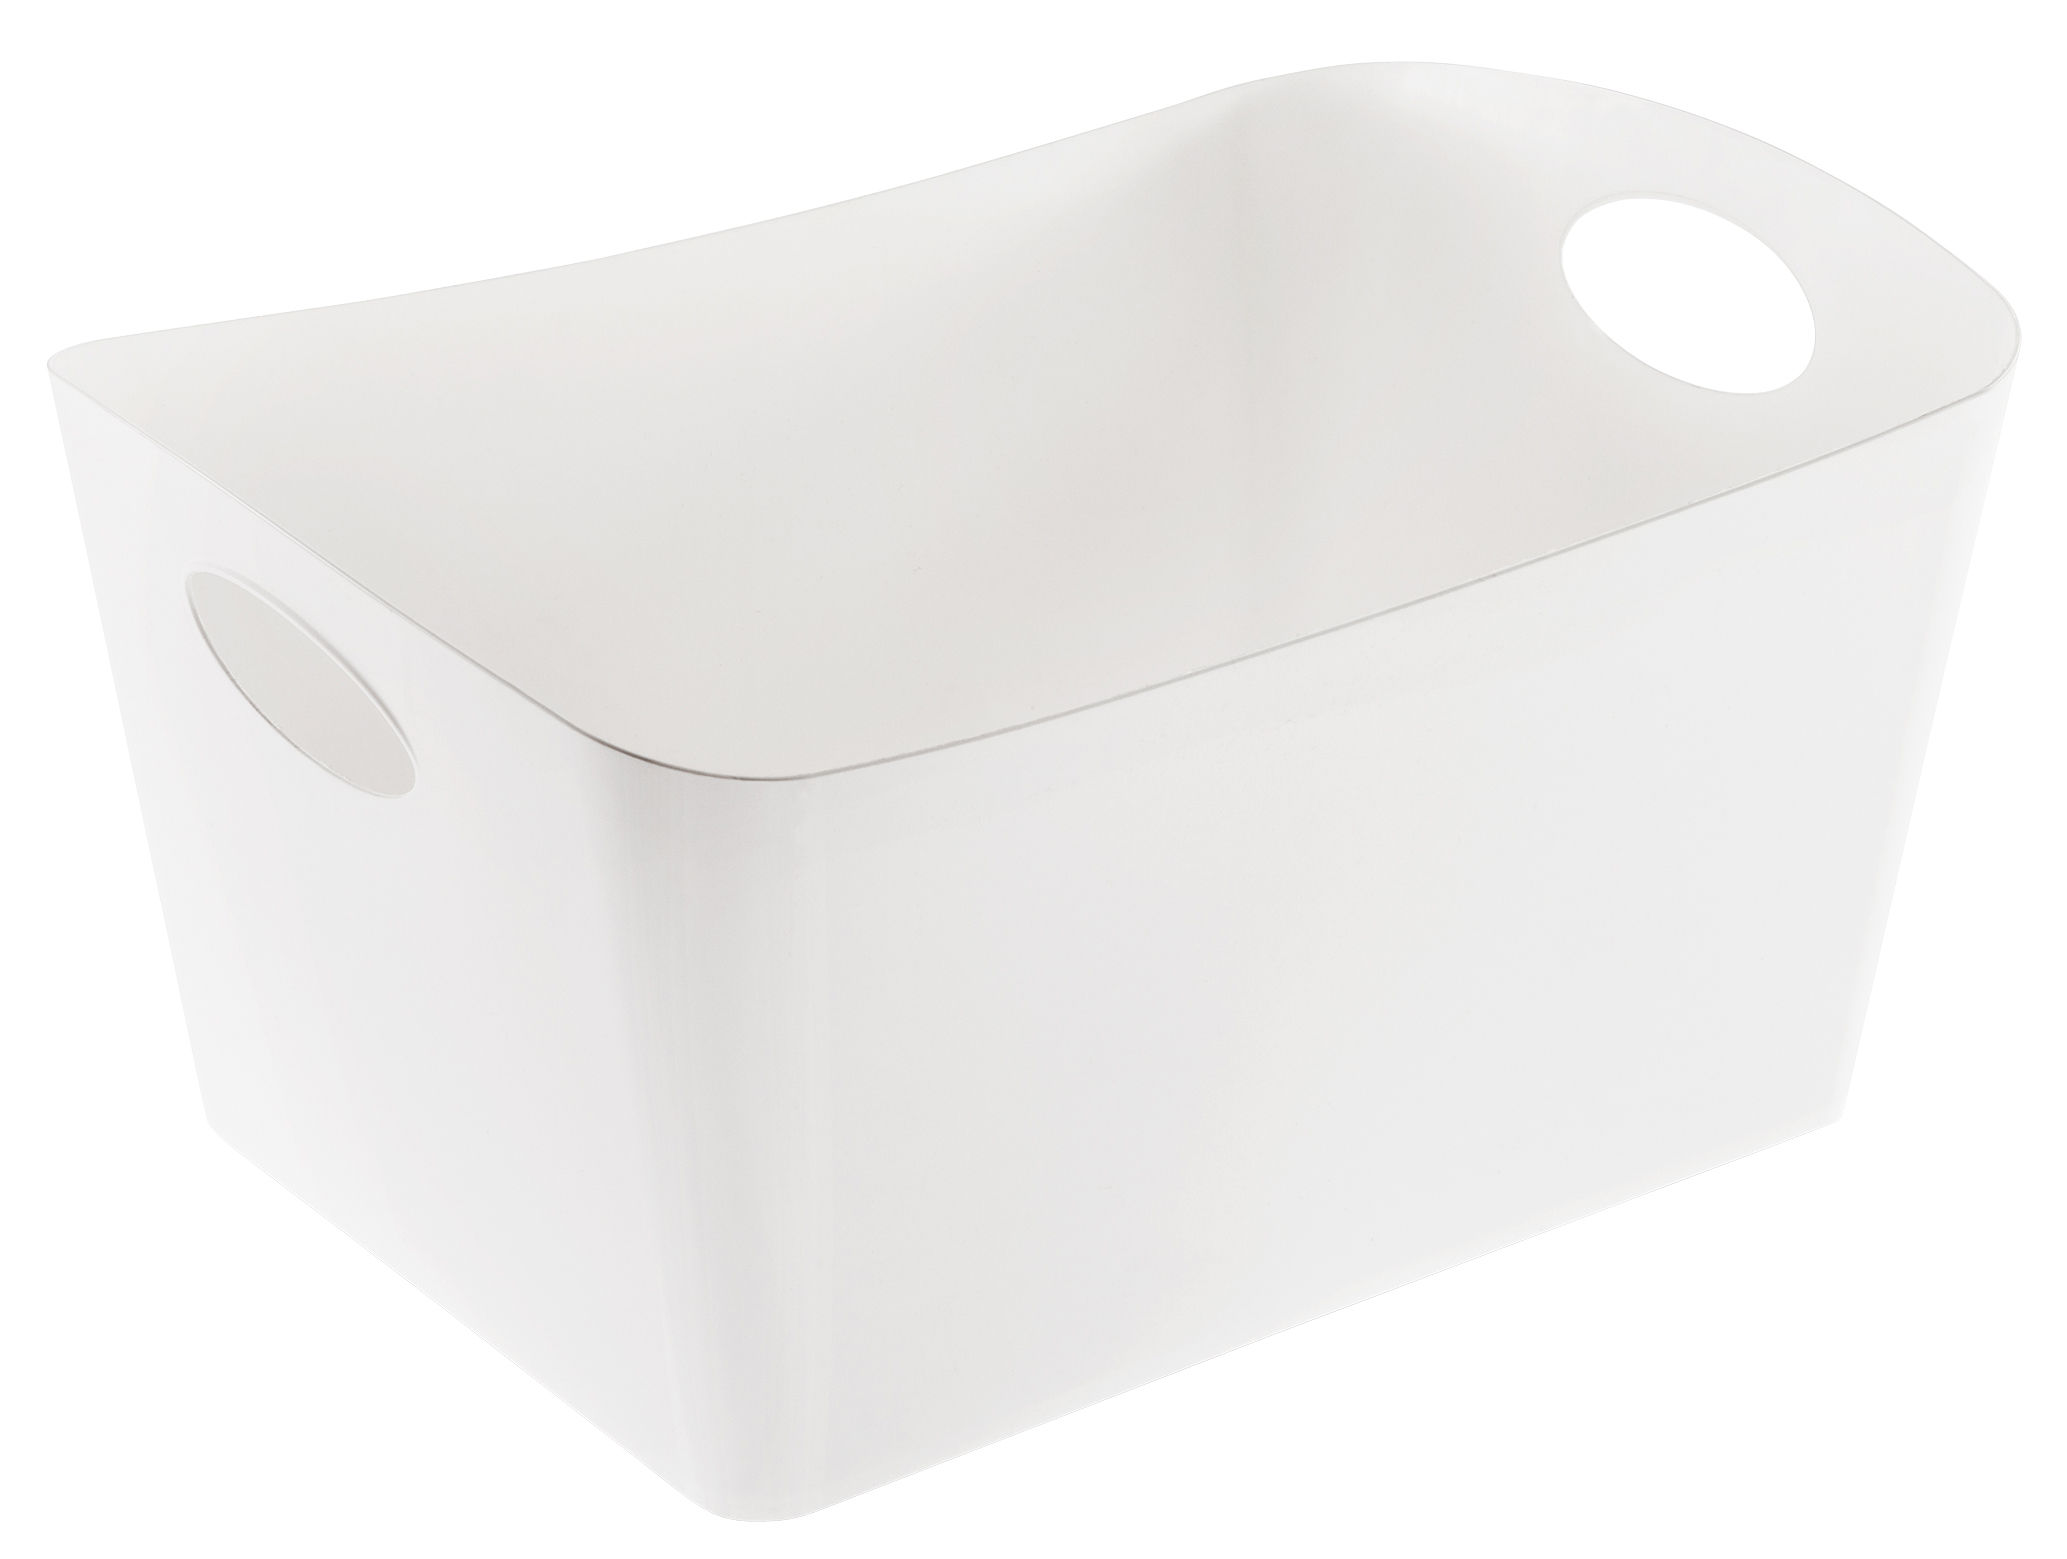 Decoration - Boxes & Baskets - Boxxx L Basket - 15 L by Koziol - Solid white - Plastic material